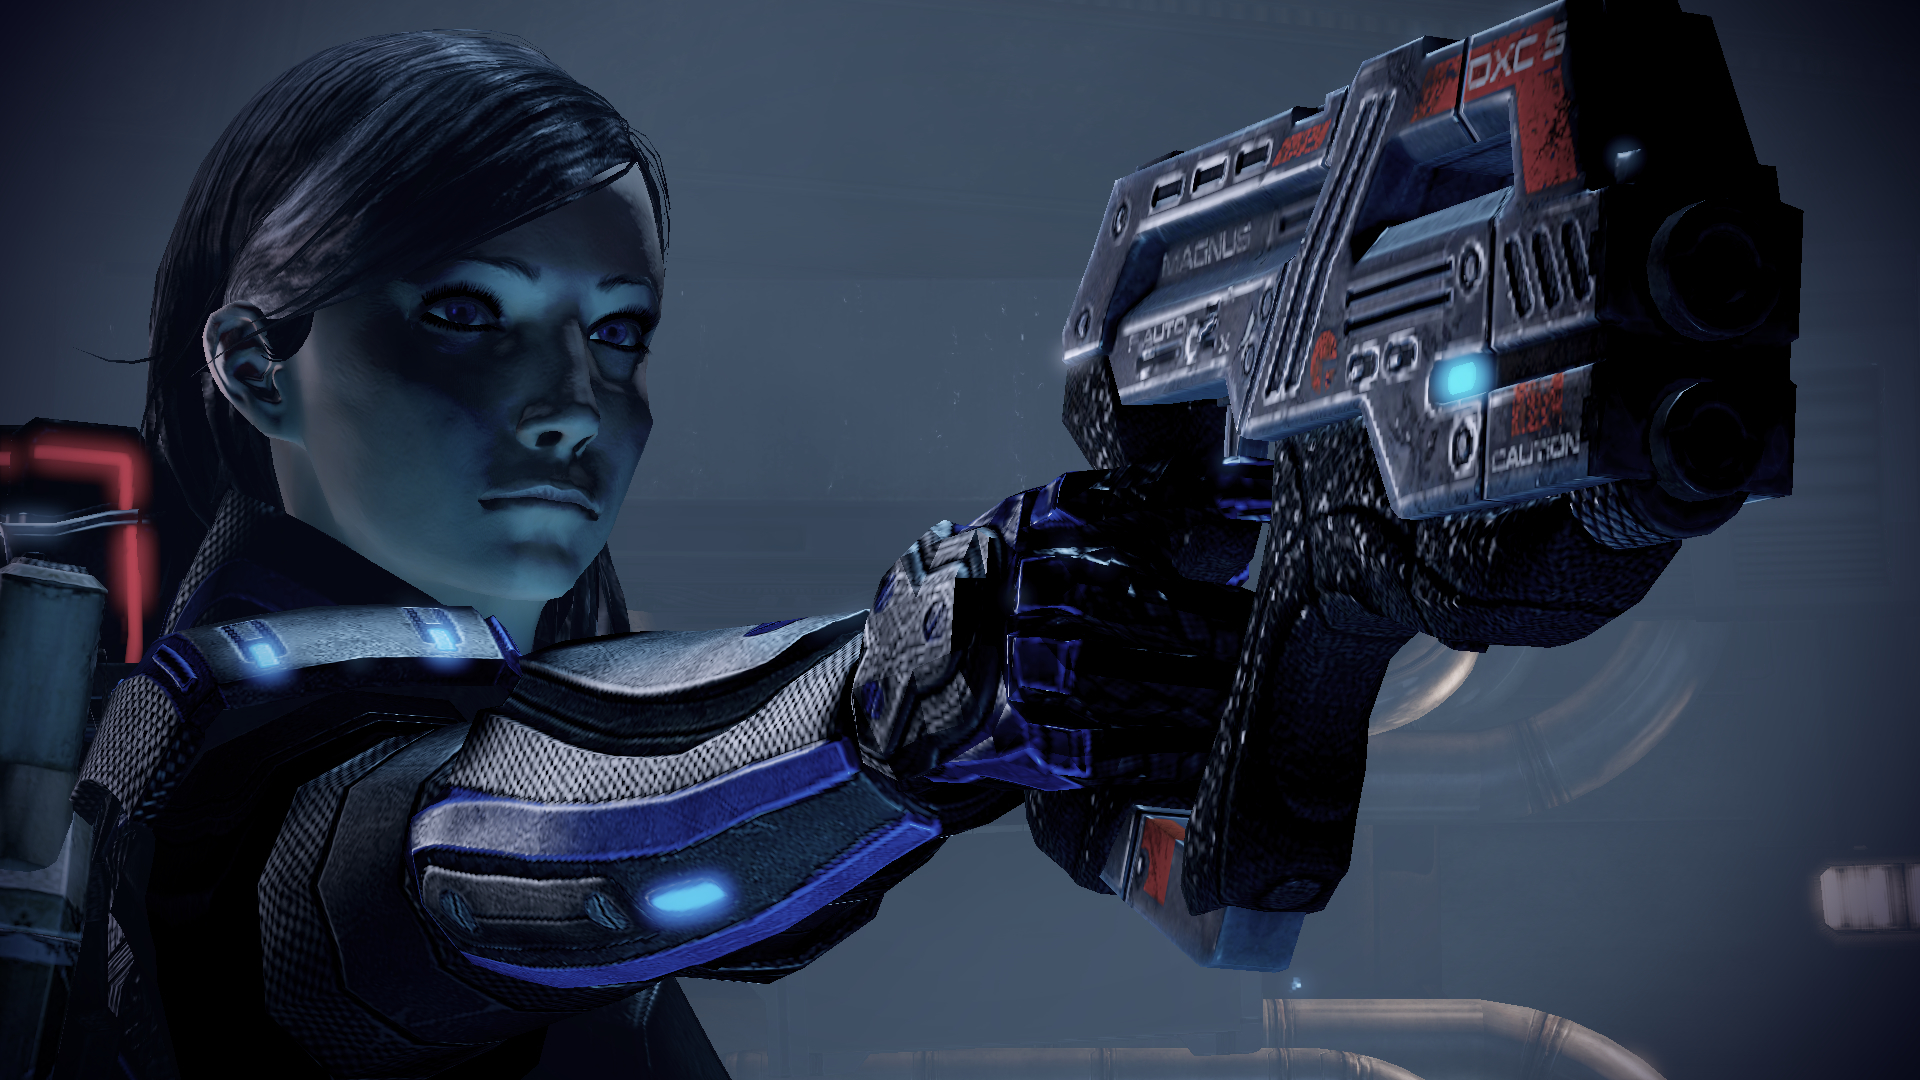 pistols mass effect FemShep HD Wallpaper